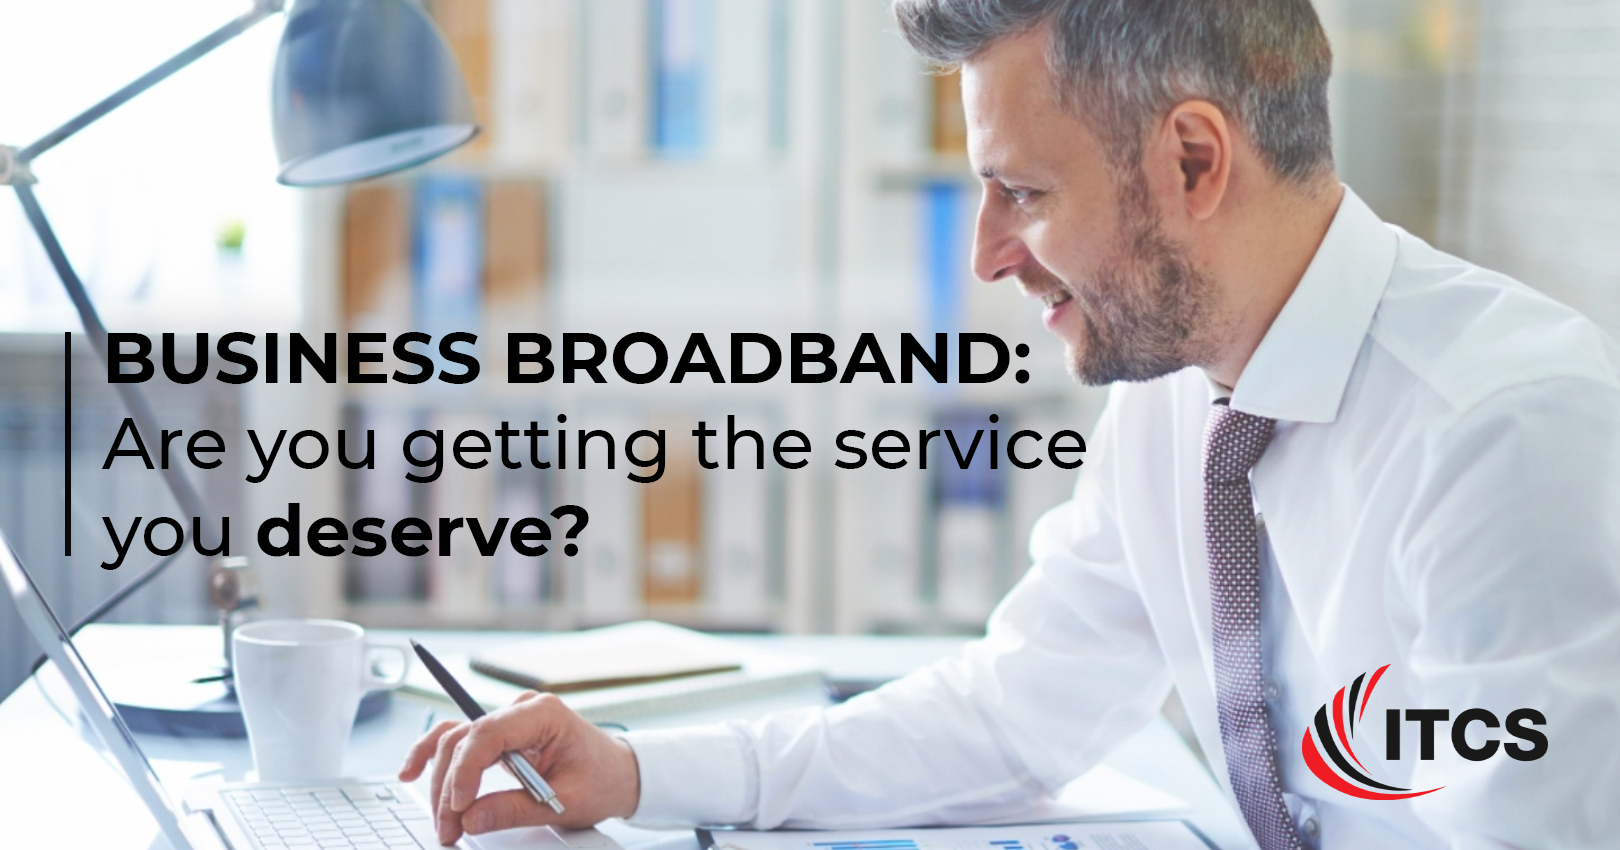 Are you getting the business broadband service you deserve?